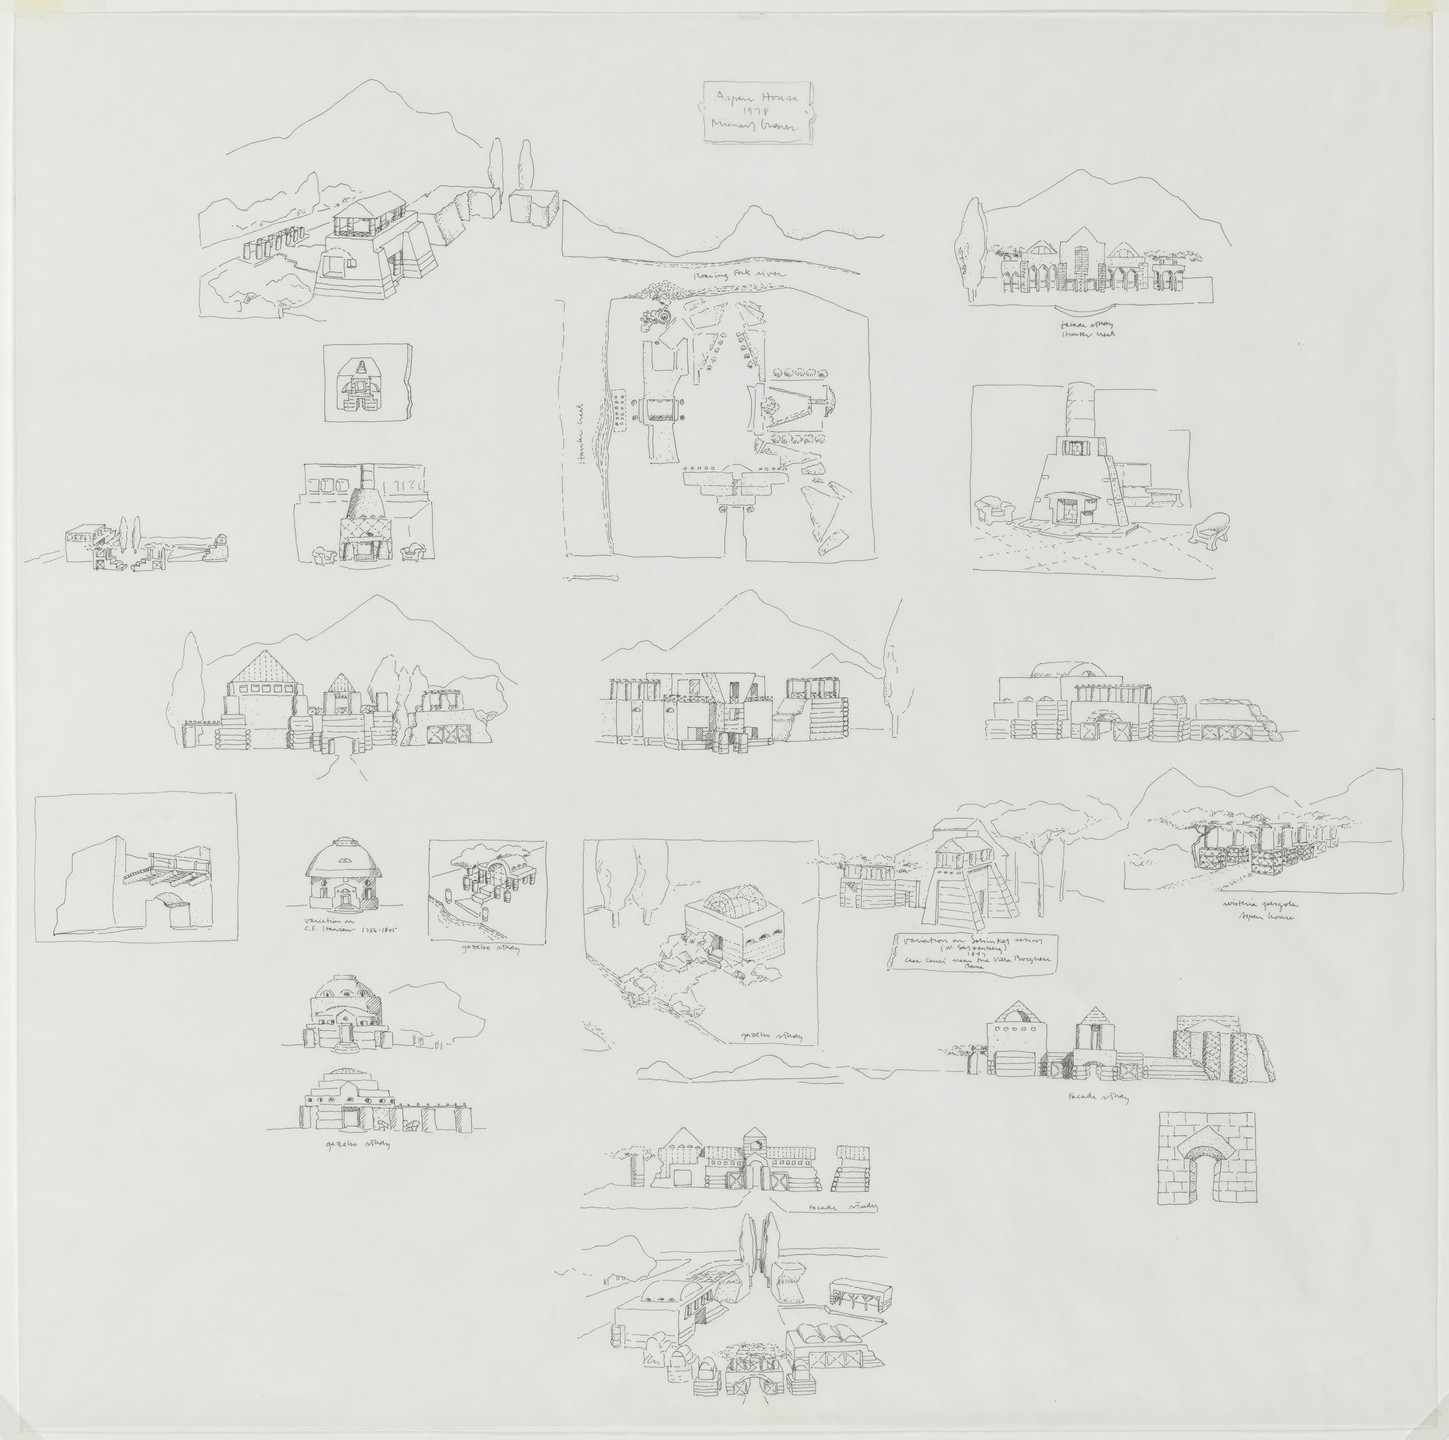 Michael Graves. Vacation House Project, Aspen, Colorado, Elevations, interior and exterior perspectives and plan. 1978